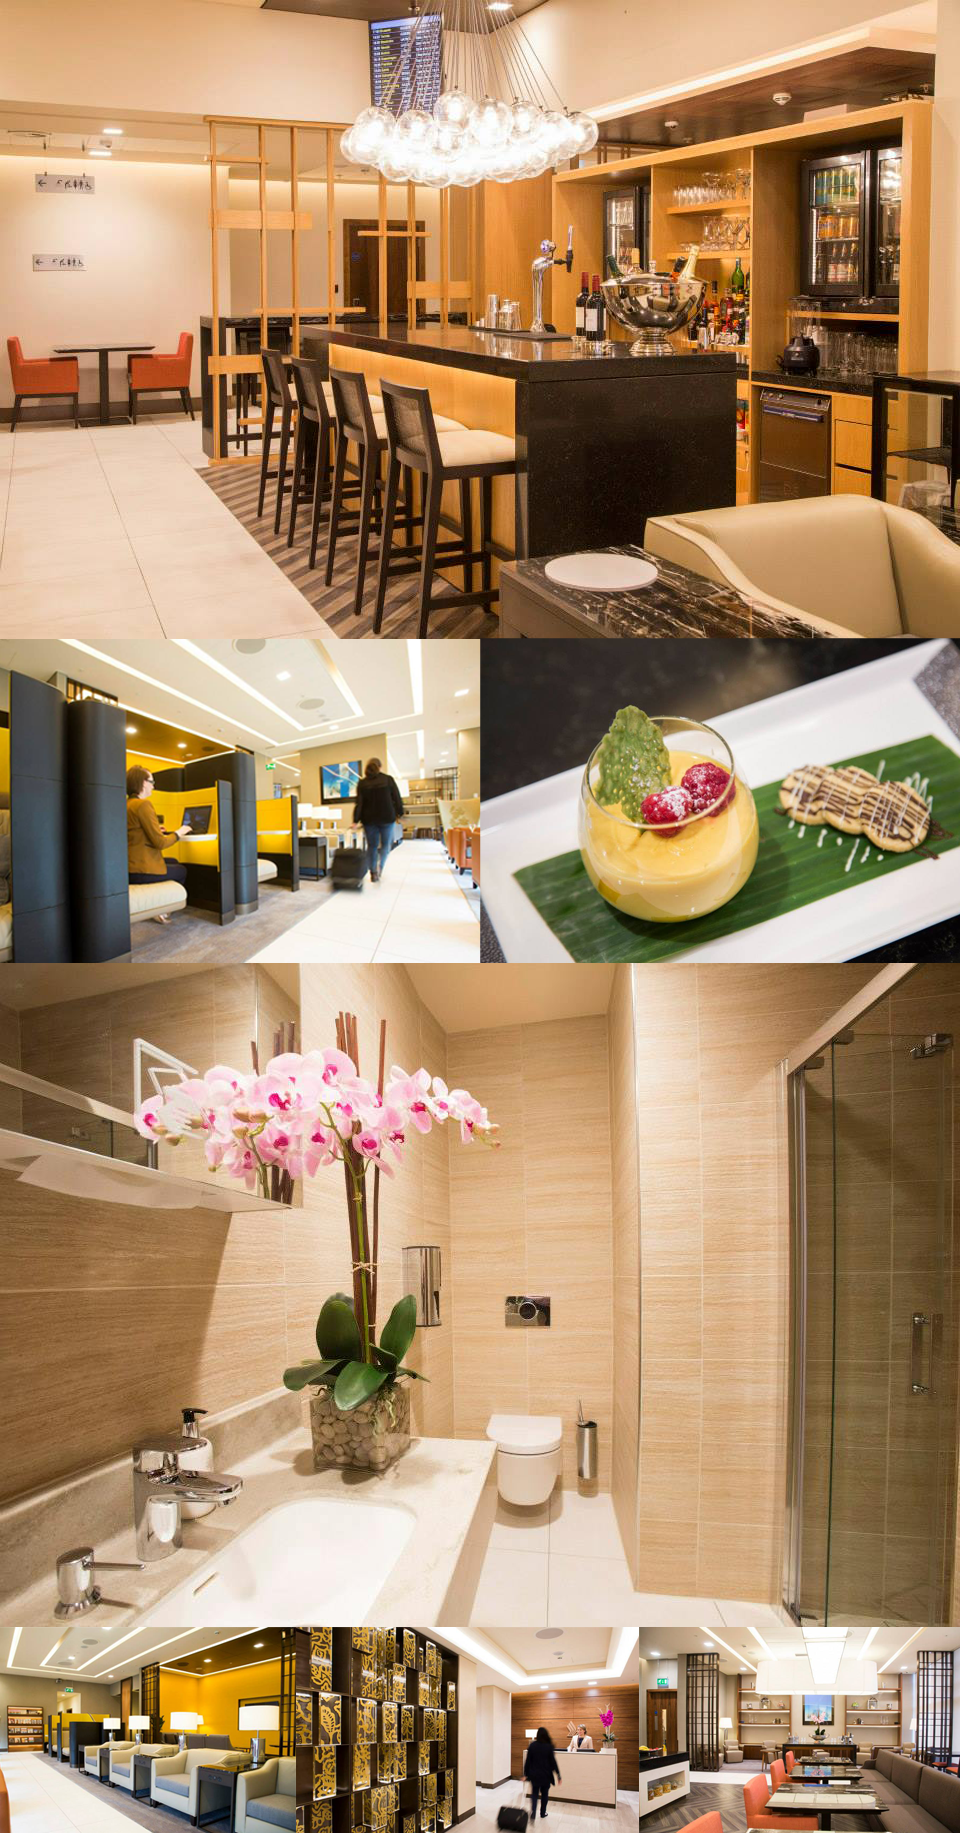 Singapore airlines unveiled its brand new silverkris lounge within get heathrow airport car parking long stay short stay and meet greet at cheapest rate for and book online the best from comprehensive price comparison kristyandbryce Images